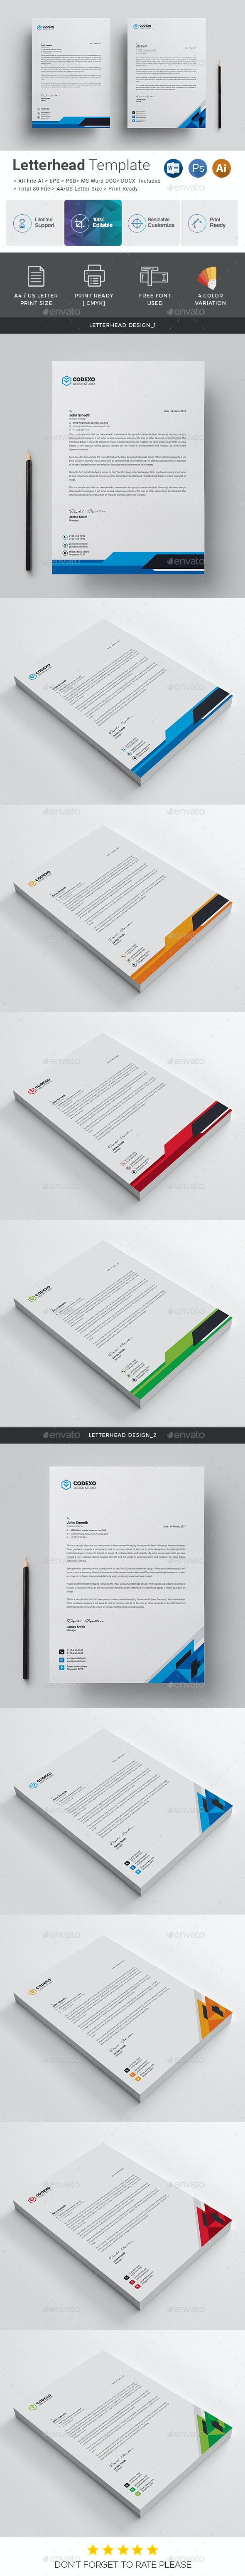 Creative Letterhead Template - Stationery Print Templates